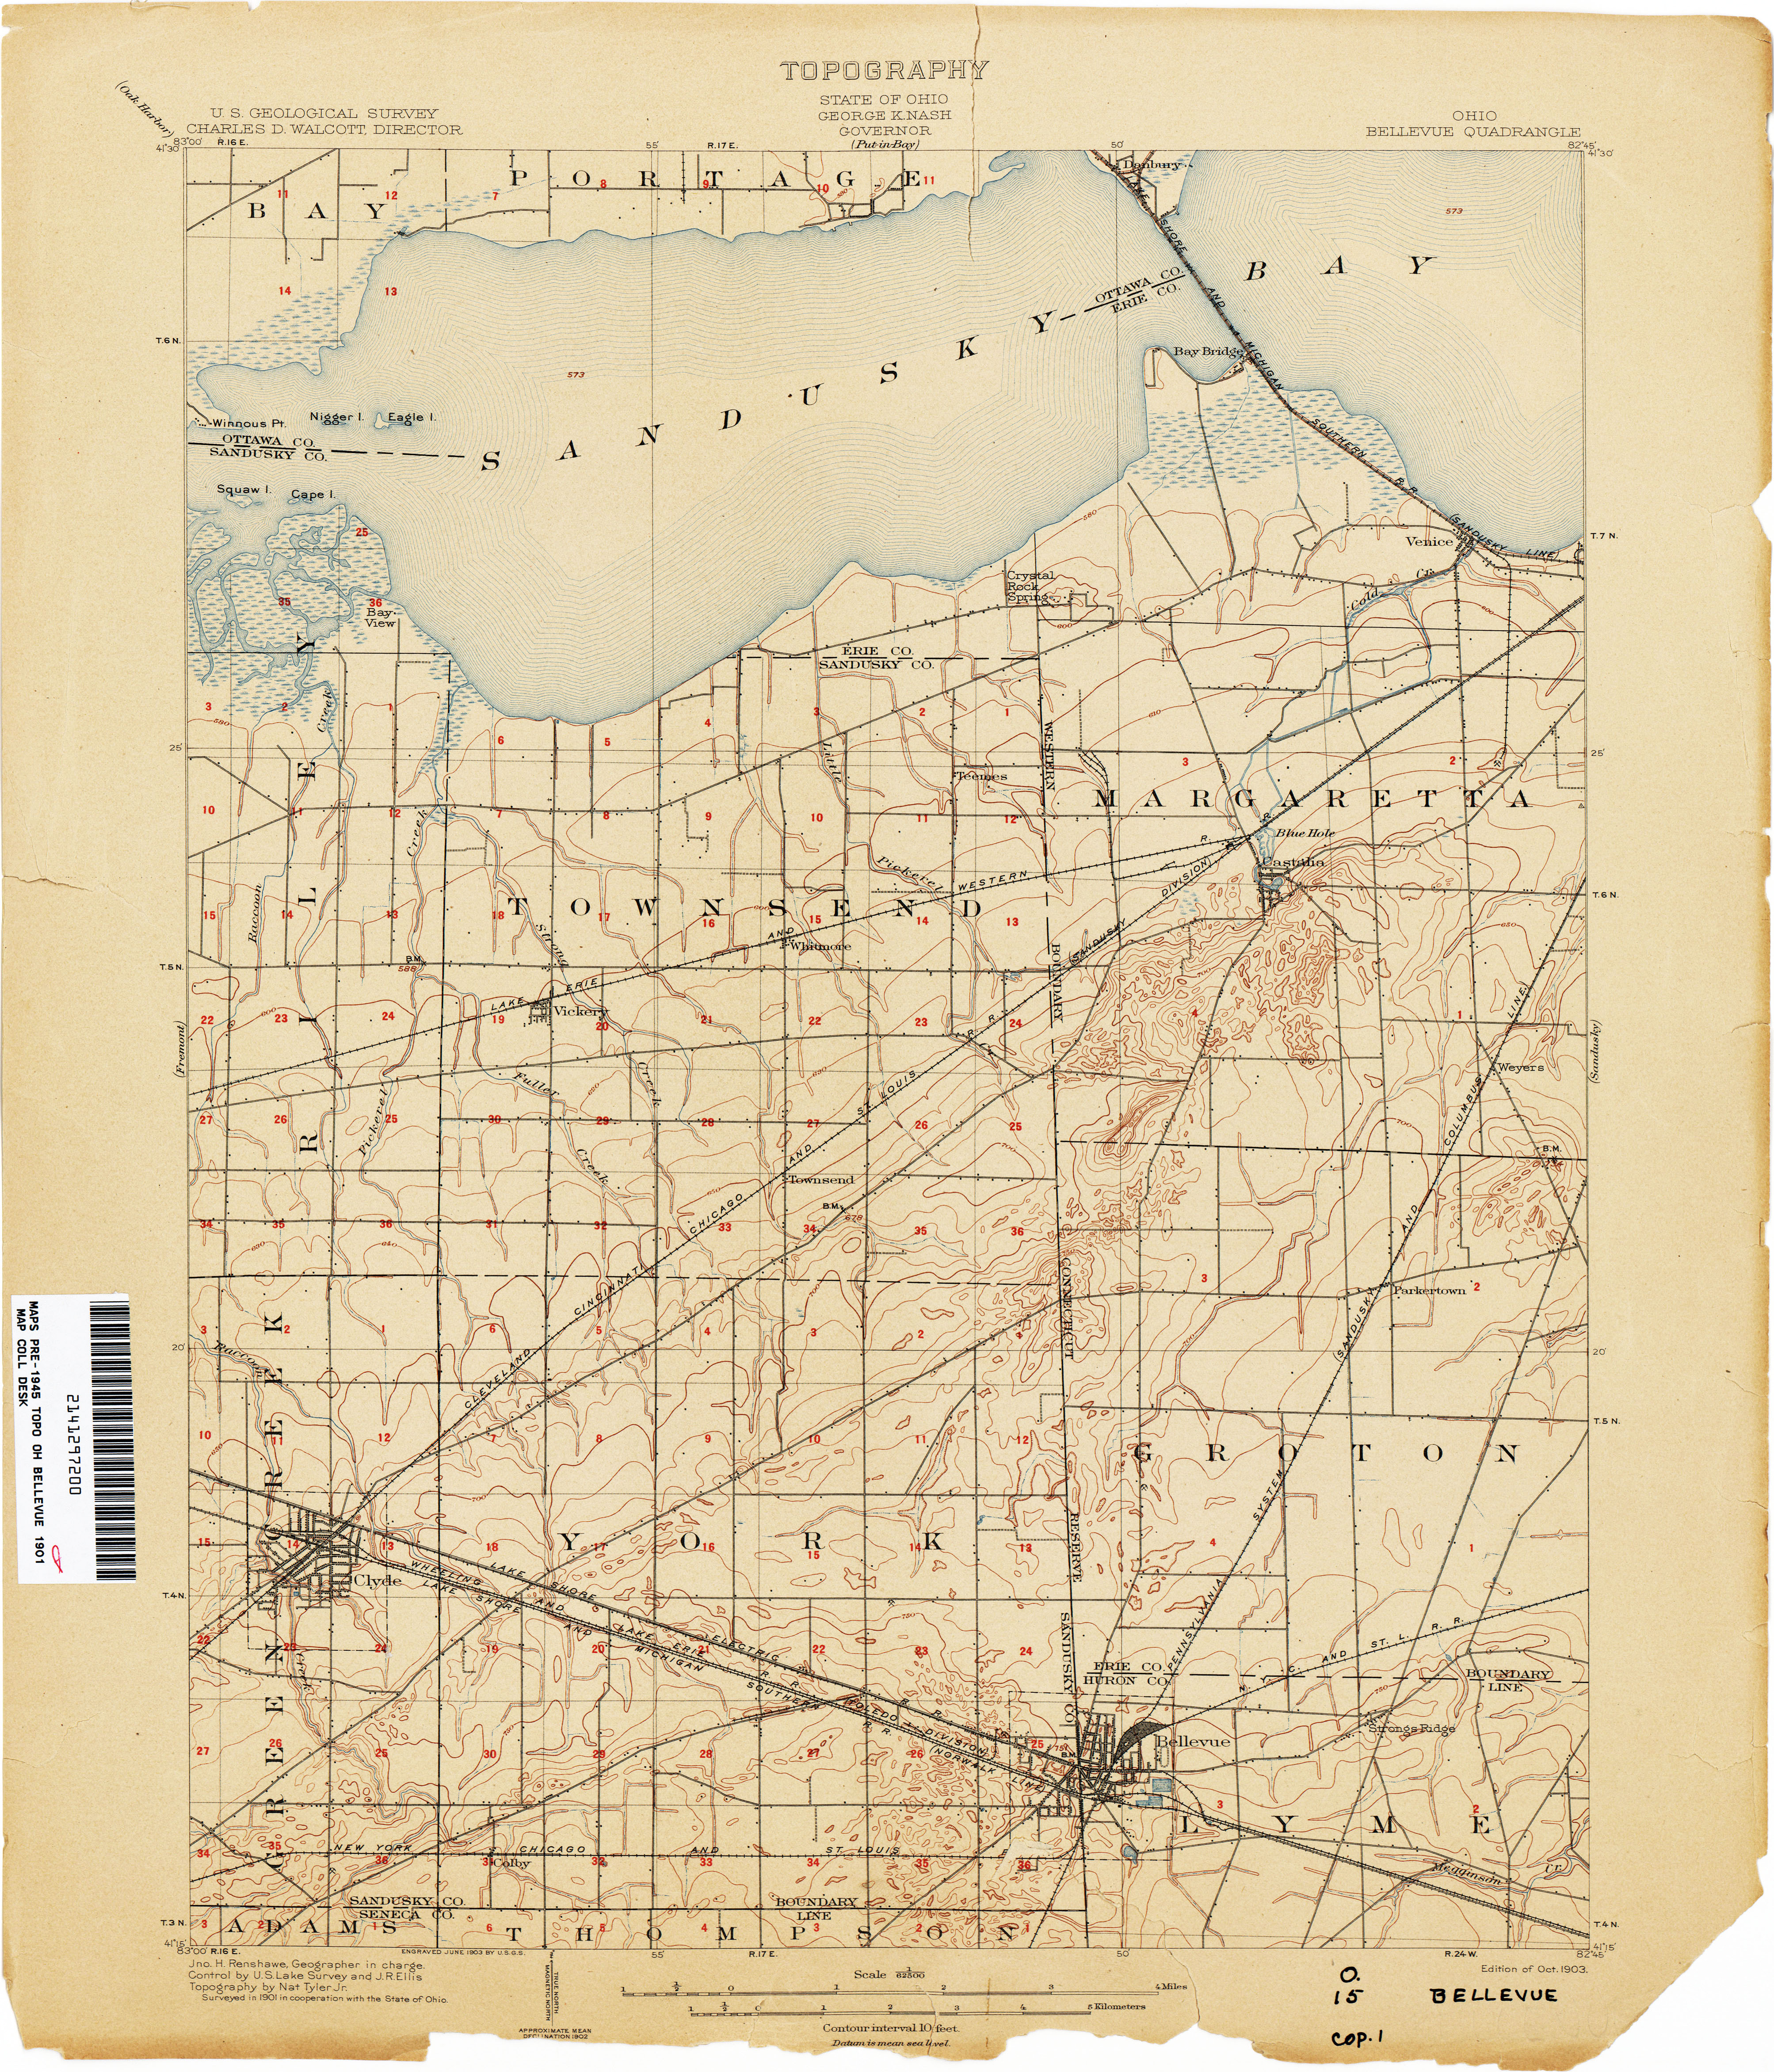 Ohio Historical Topographic Maps Perry Castaneda Map Collection